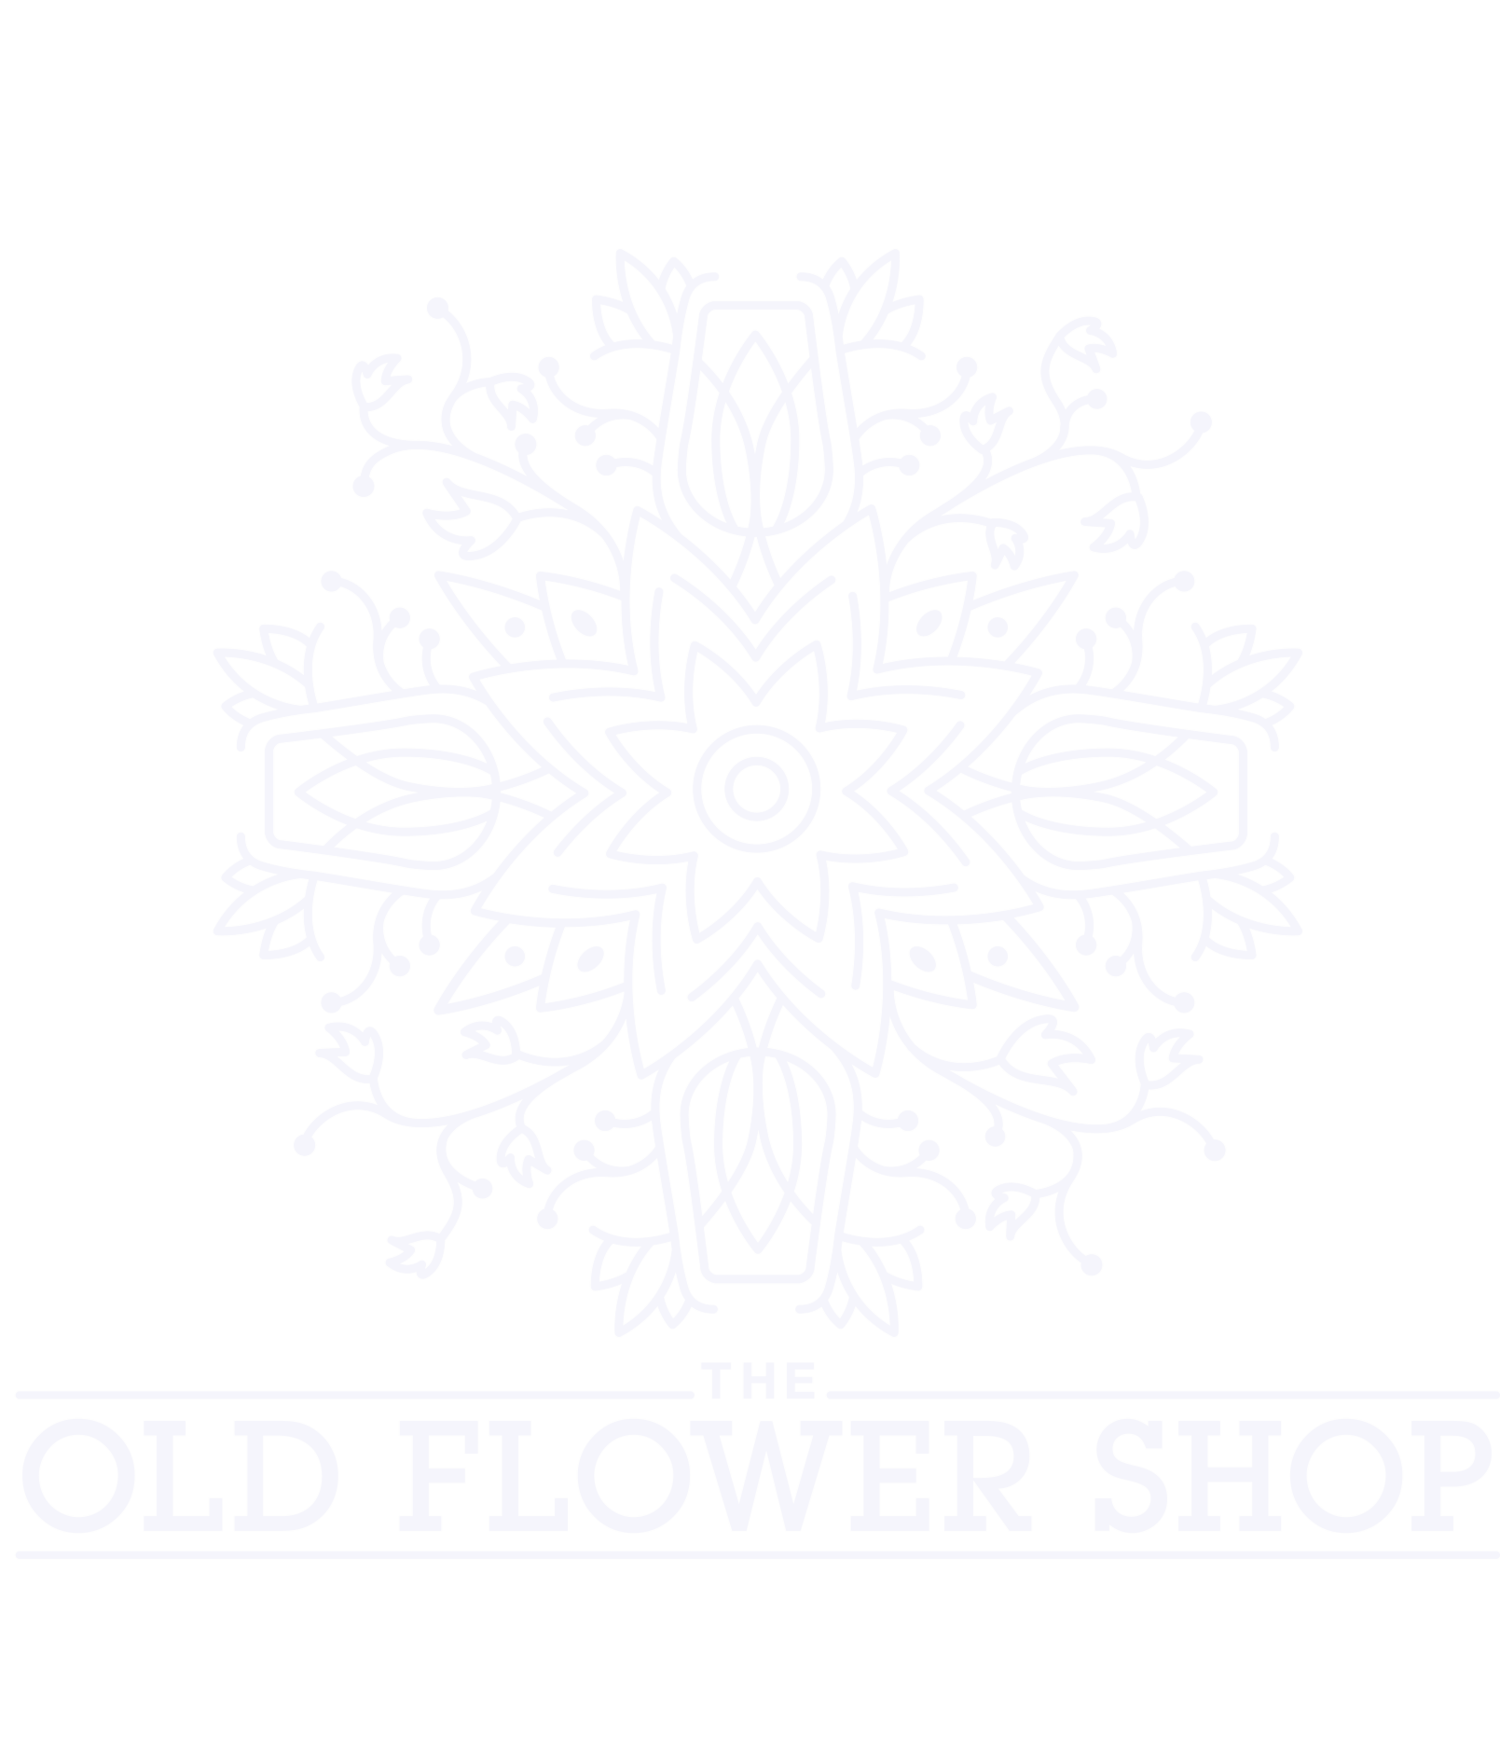 The Old Flower Shop